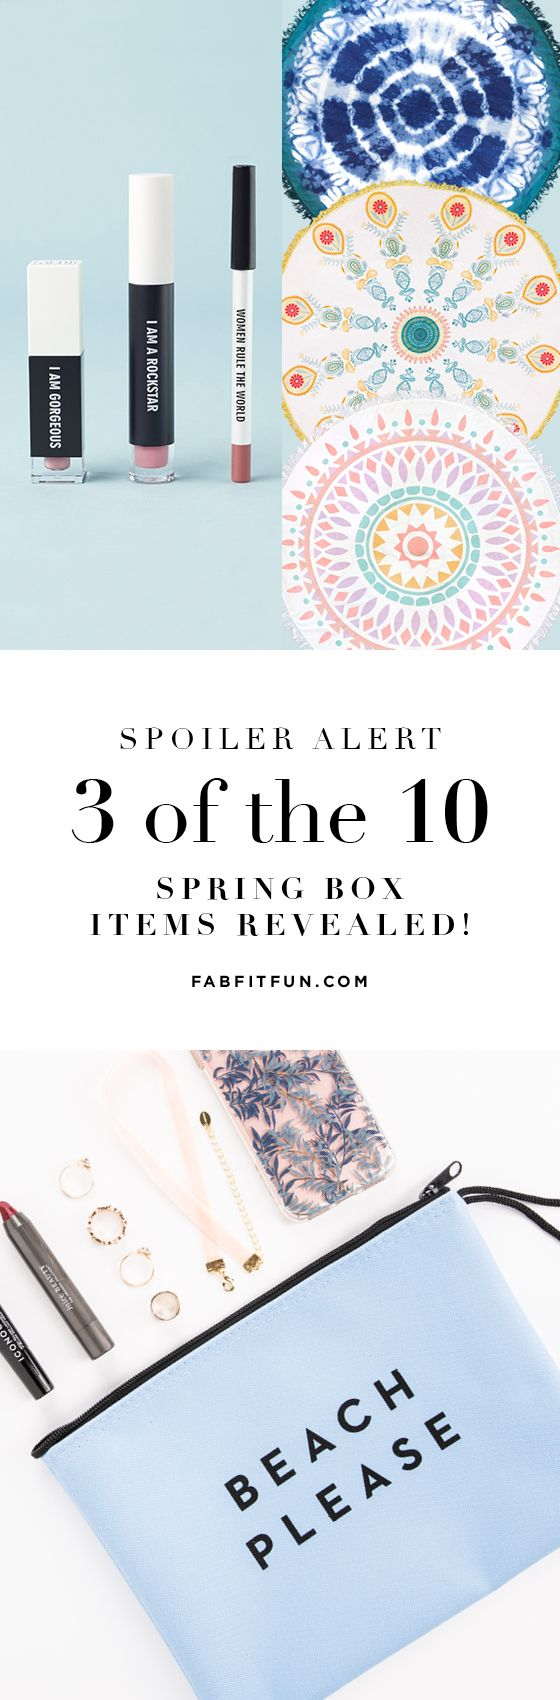 PRESALE ALERT: The Spring Box is now on sale! Sign up today to reserve yours. These boxes sell out quick + you won't want to miss out! Use code HAPPY to get $10 off + FREE Shipping. Every box will have a Milly clutch, a Real Her Lip Kit w/full-size lip liner, lip gloss, + liquid lipstick, a Gypsy05 Roundie, + more full-size items that we can't reveal yet!